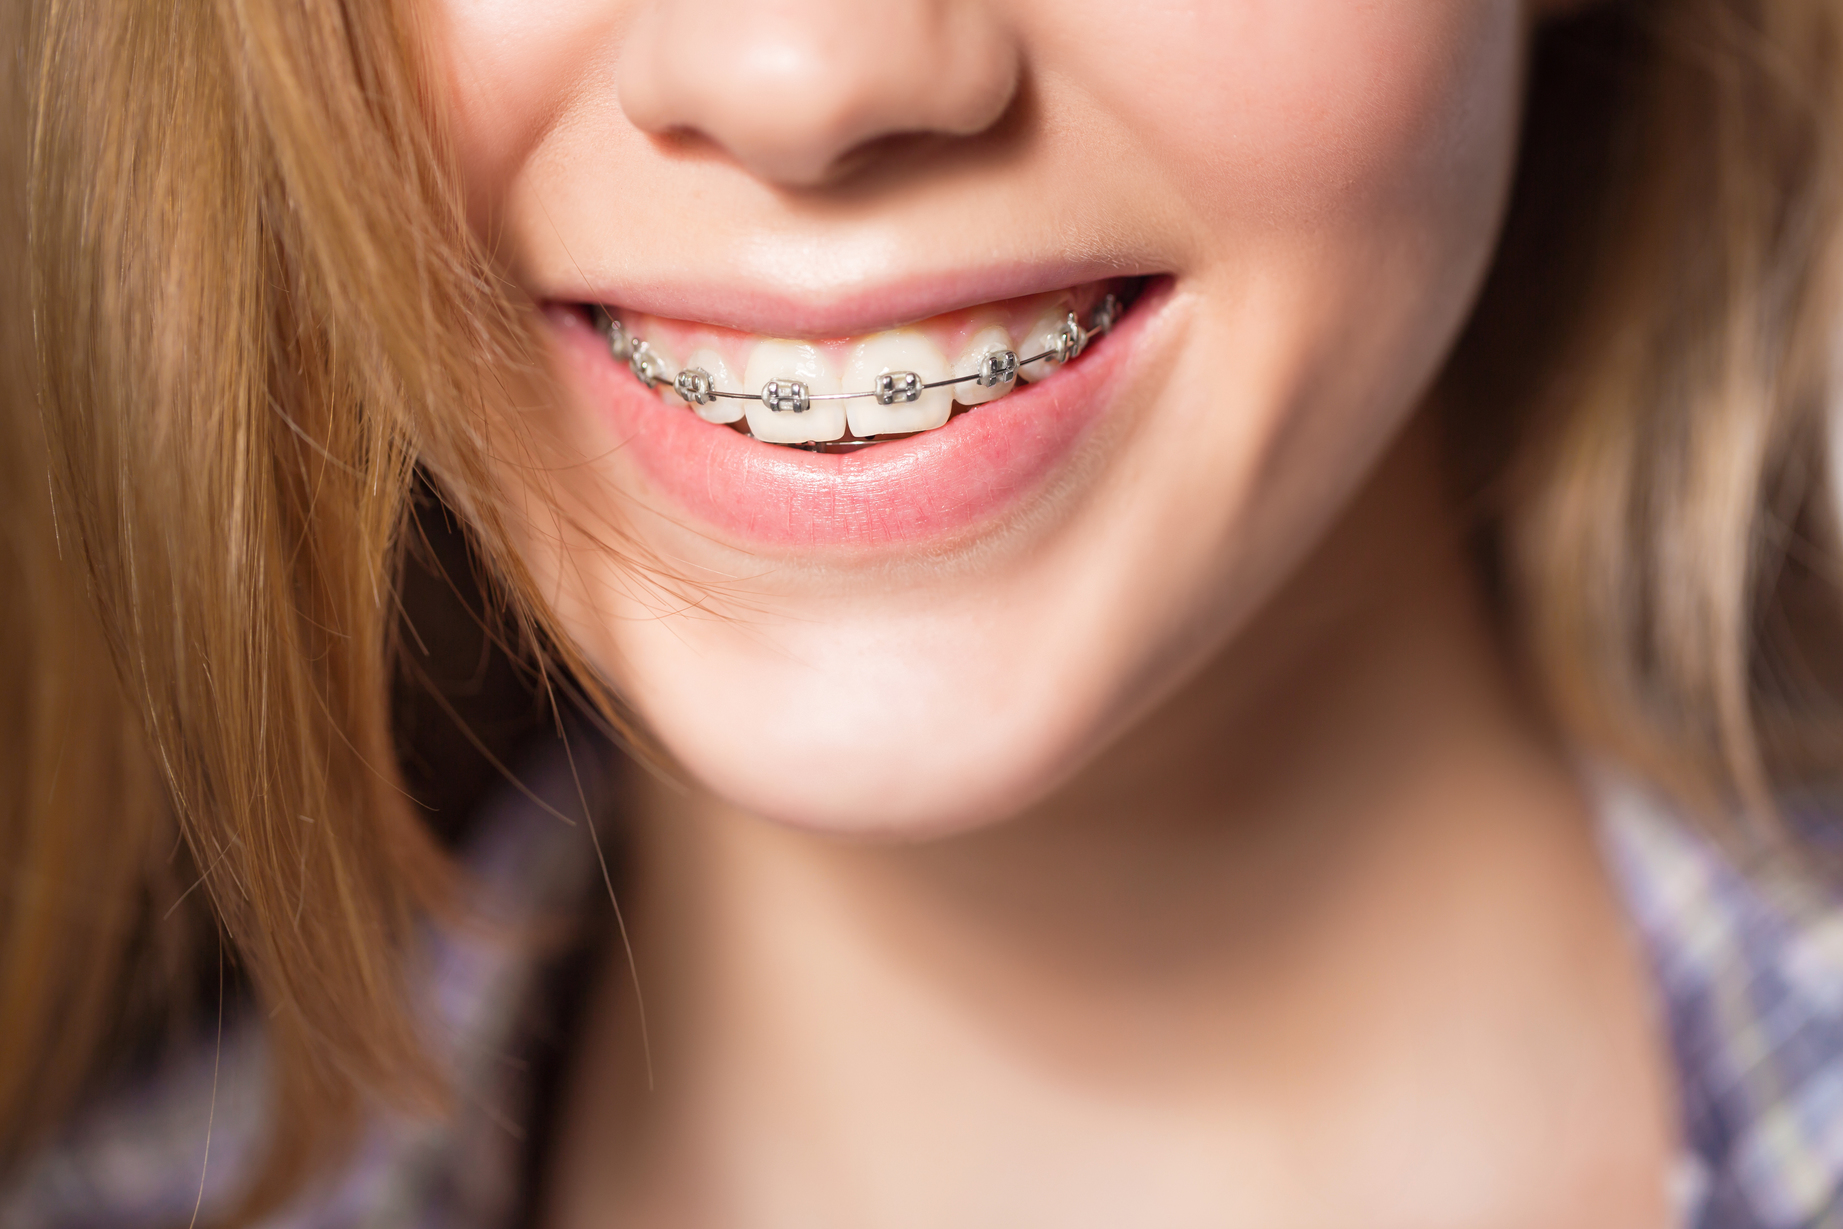 Woman wearing braces